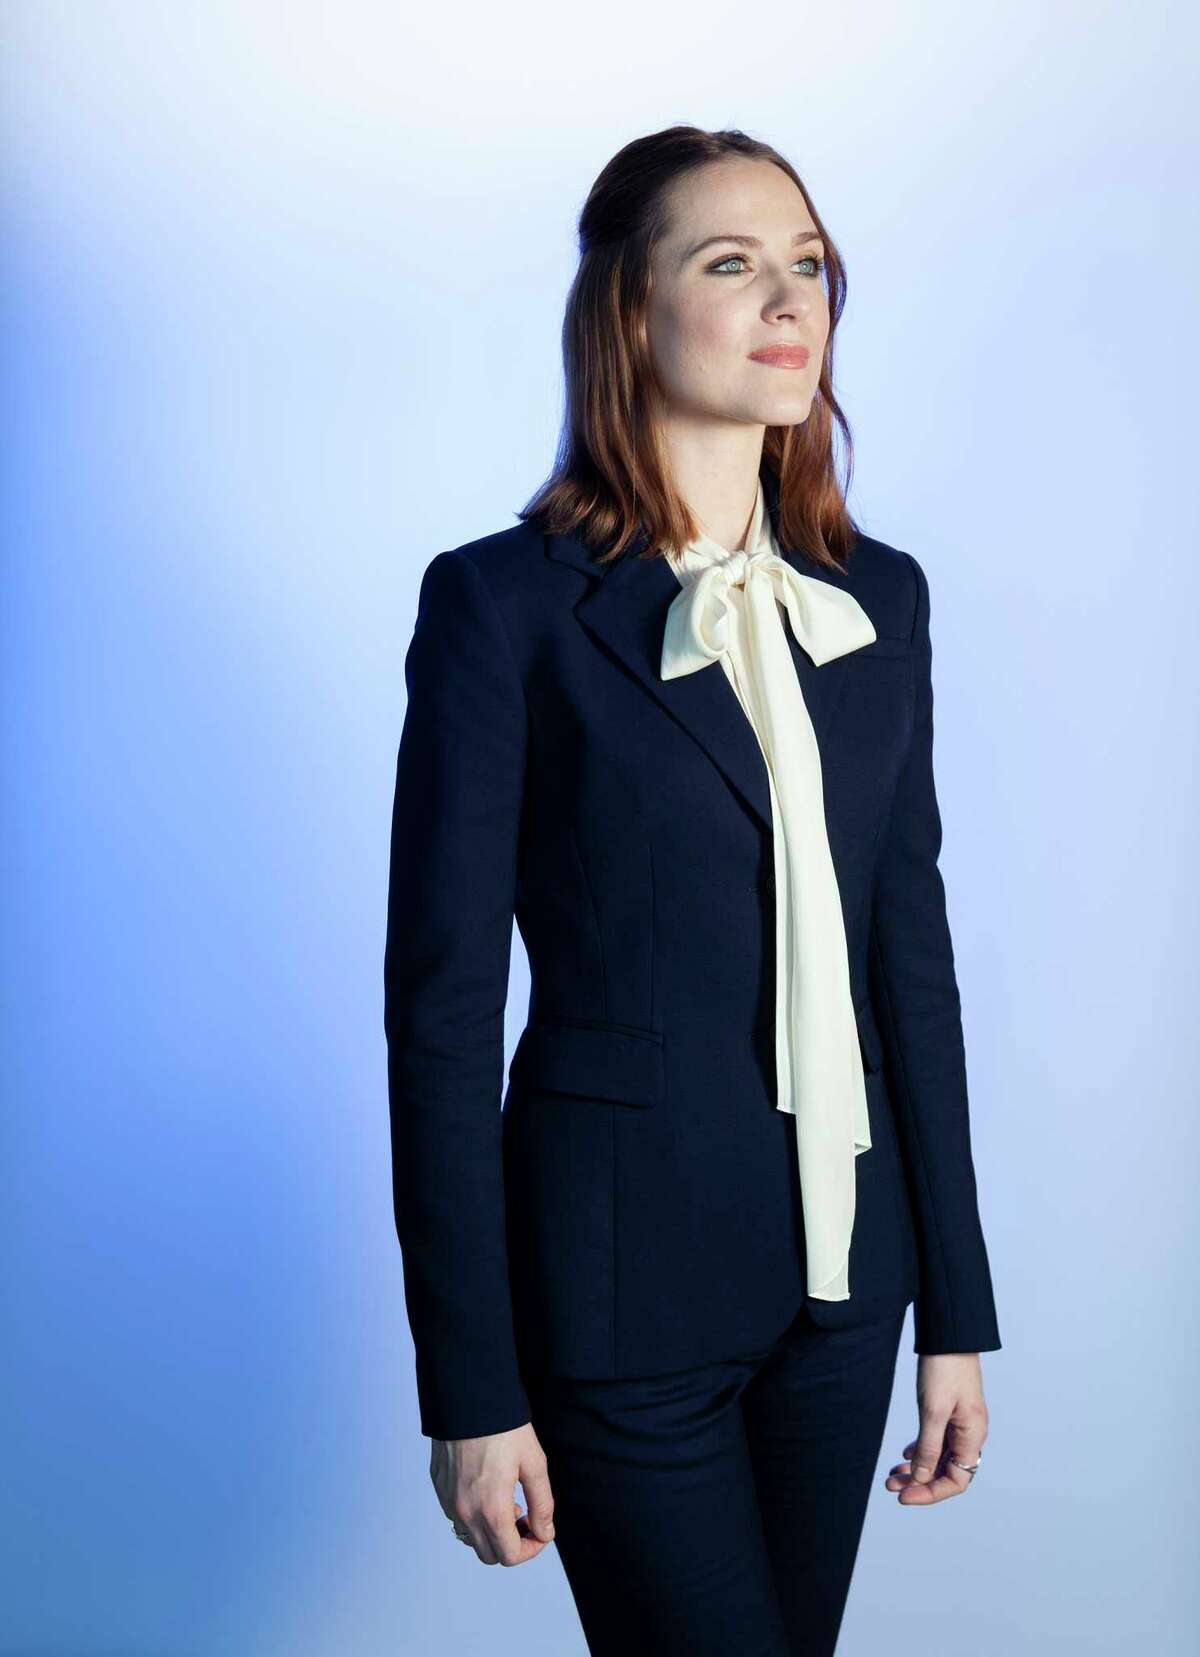 FILE - This Nov. 9, 2019, photo shows Evan Rachel Wood, who voices the character Iduna, posing for a portrait in Los Angeles to promote her film